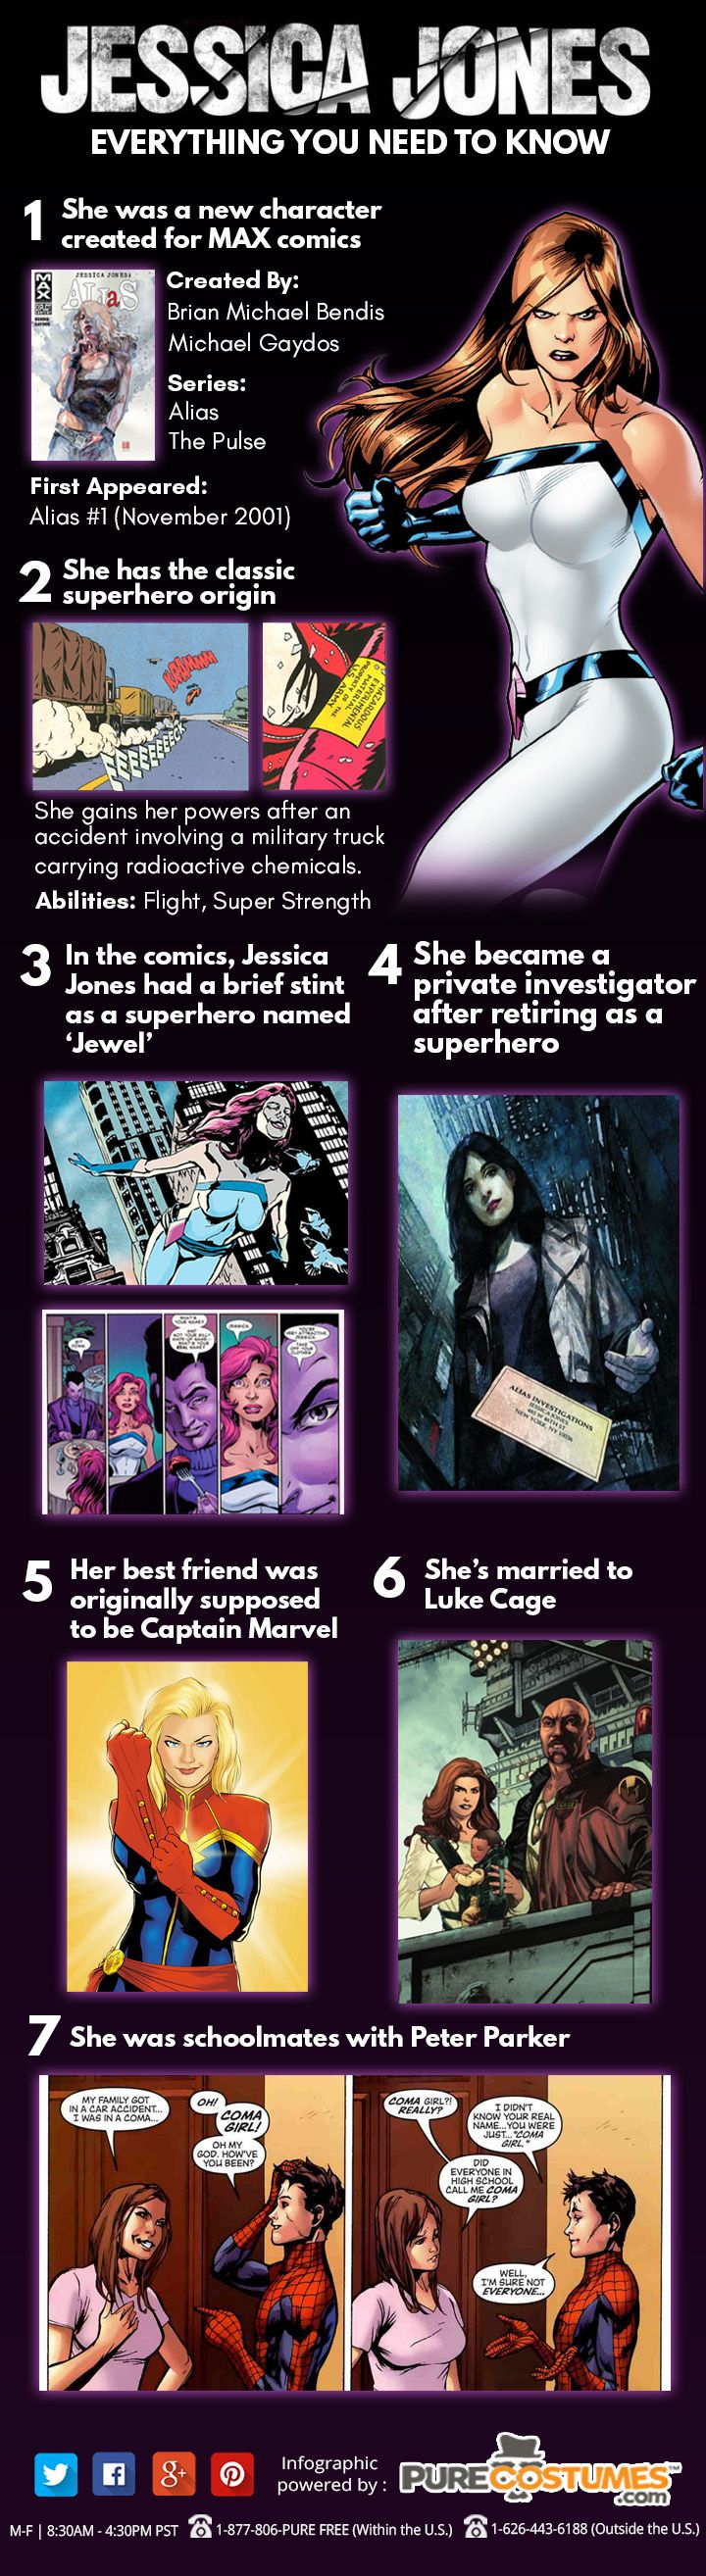 Jessica Jones Infographic #marvel #superheroes #infographics